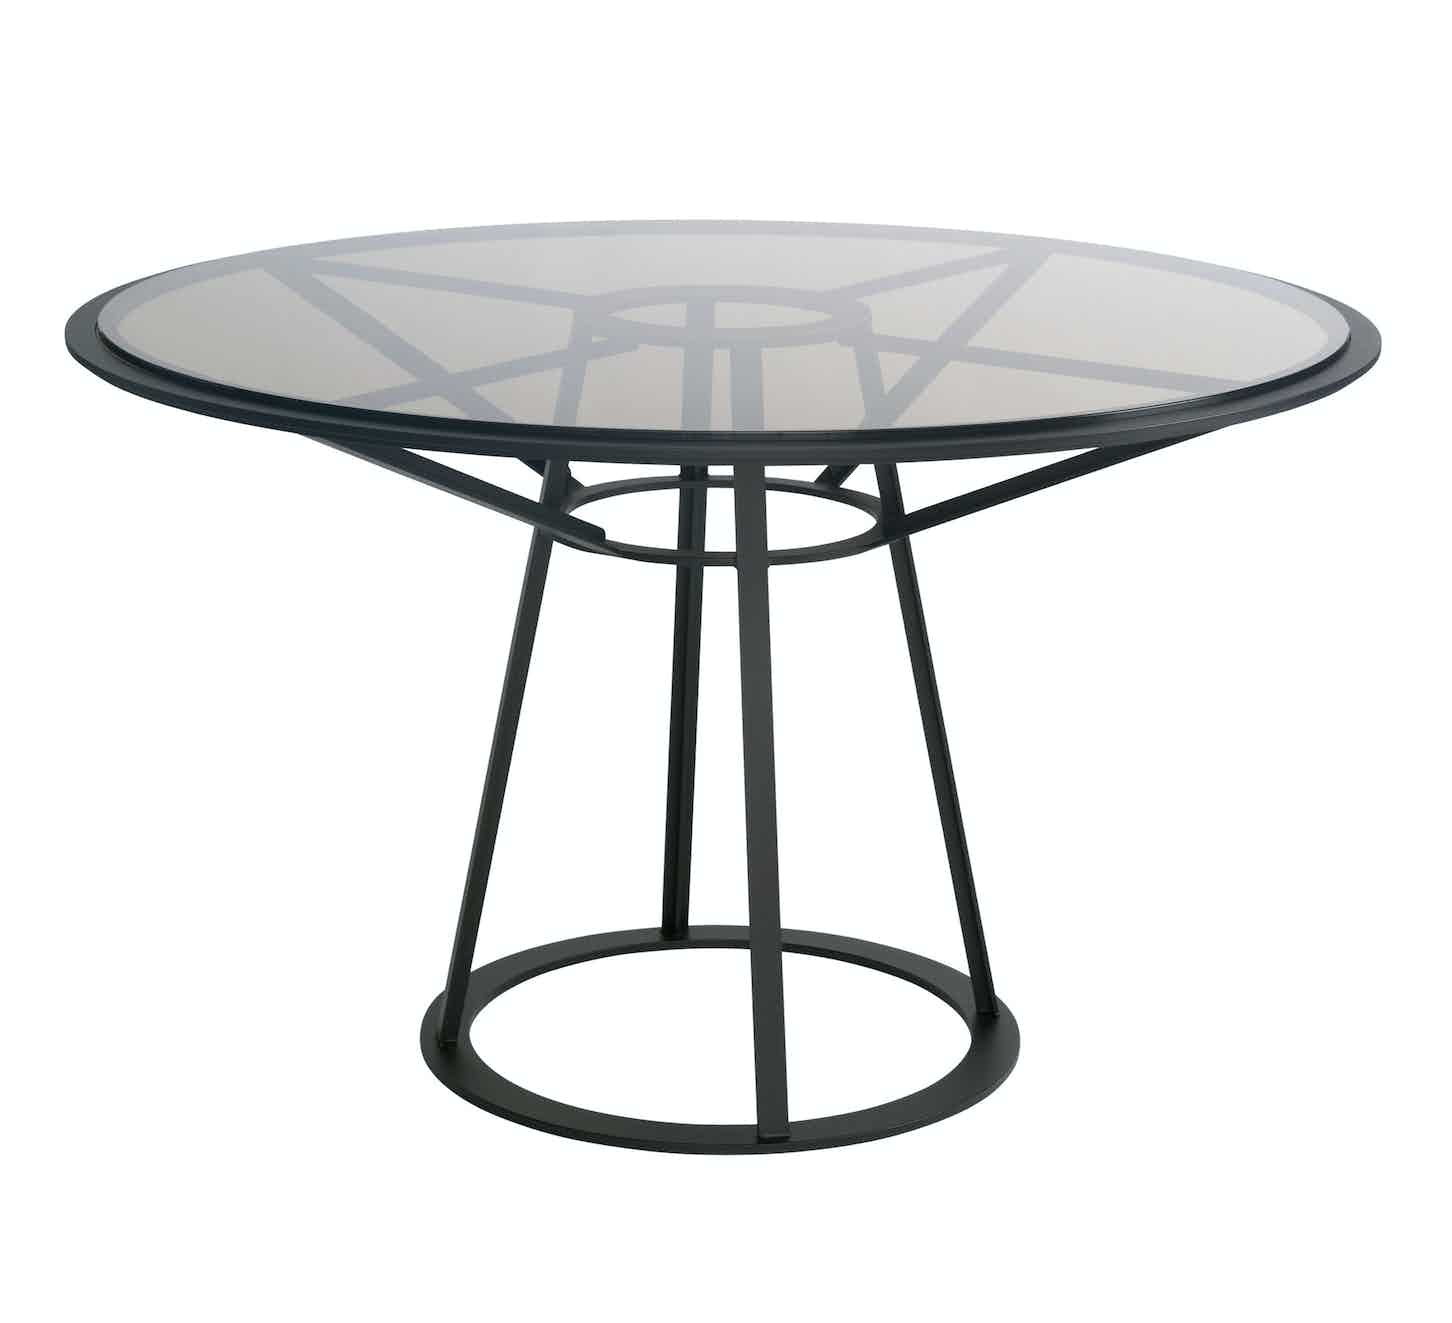 Spectrum Furniture Round Top Endless Round Table Haute Table